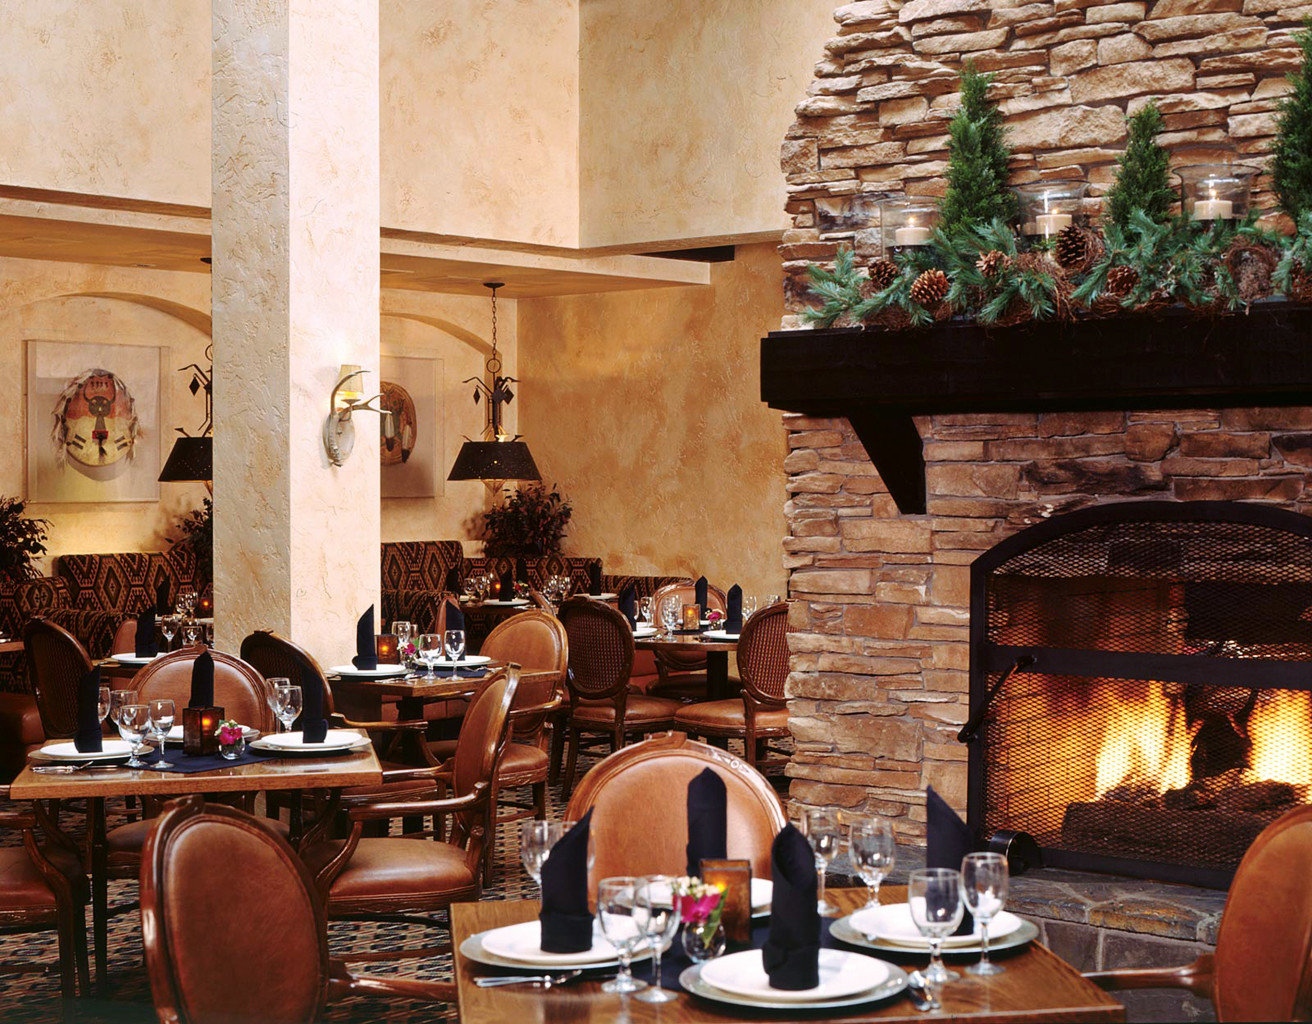 Country Dining Drink Eat Fireplace Lodge restaurant living room Bar stone